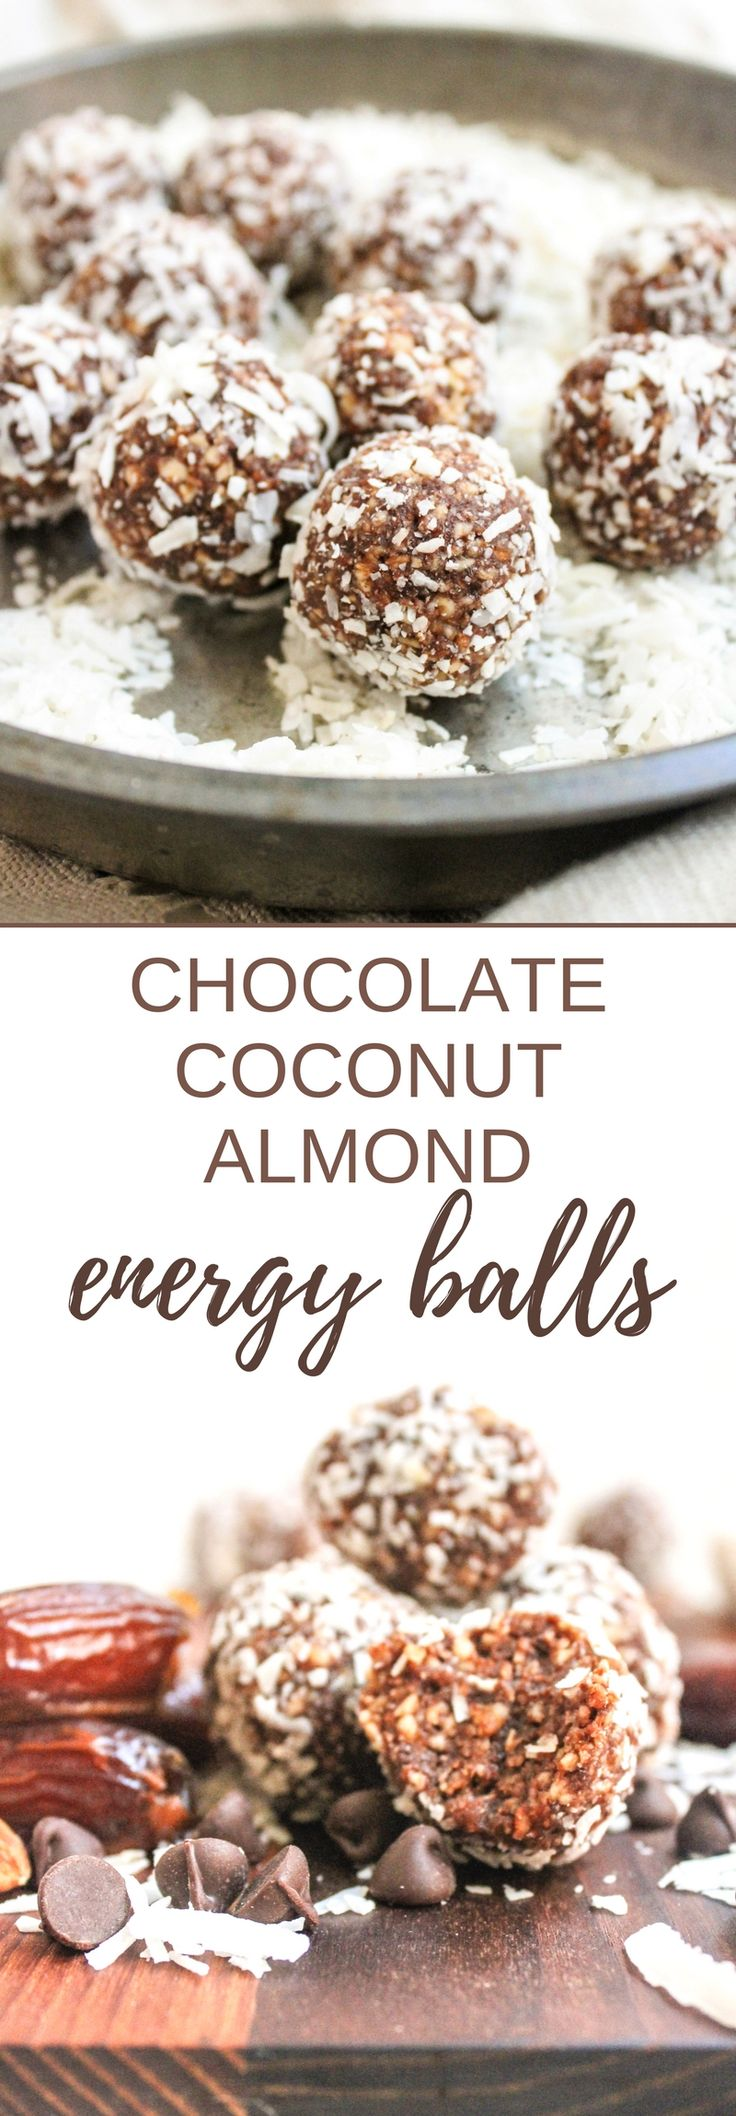 These Chocolate Coconut Almond Energy Balls are quick, easy, and healthy - yet taste like a candy bar! They're a great way to satisfy sweet cravings with some thing a little healthier, plus they're vegan and gluten free! | healthy snack ideas | homemade almond joy | chocolate energy ball recipe | vegan snack recipes |